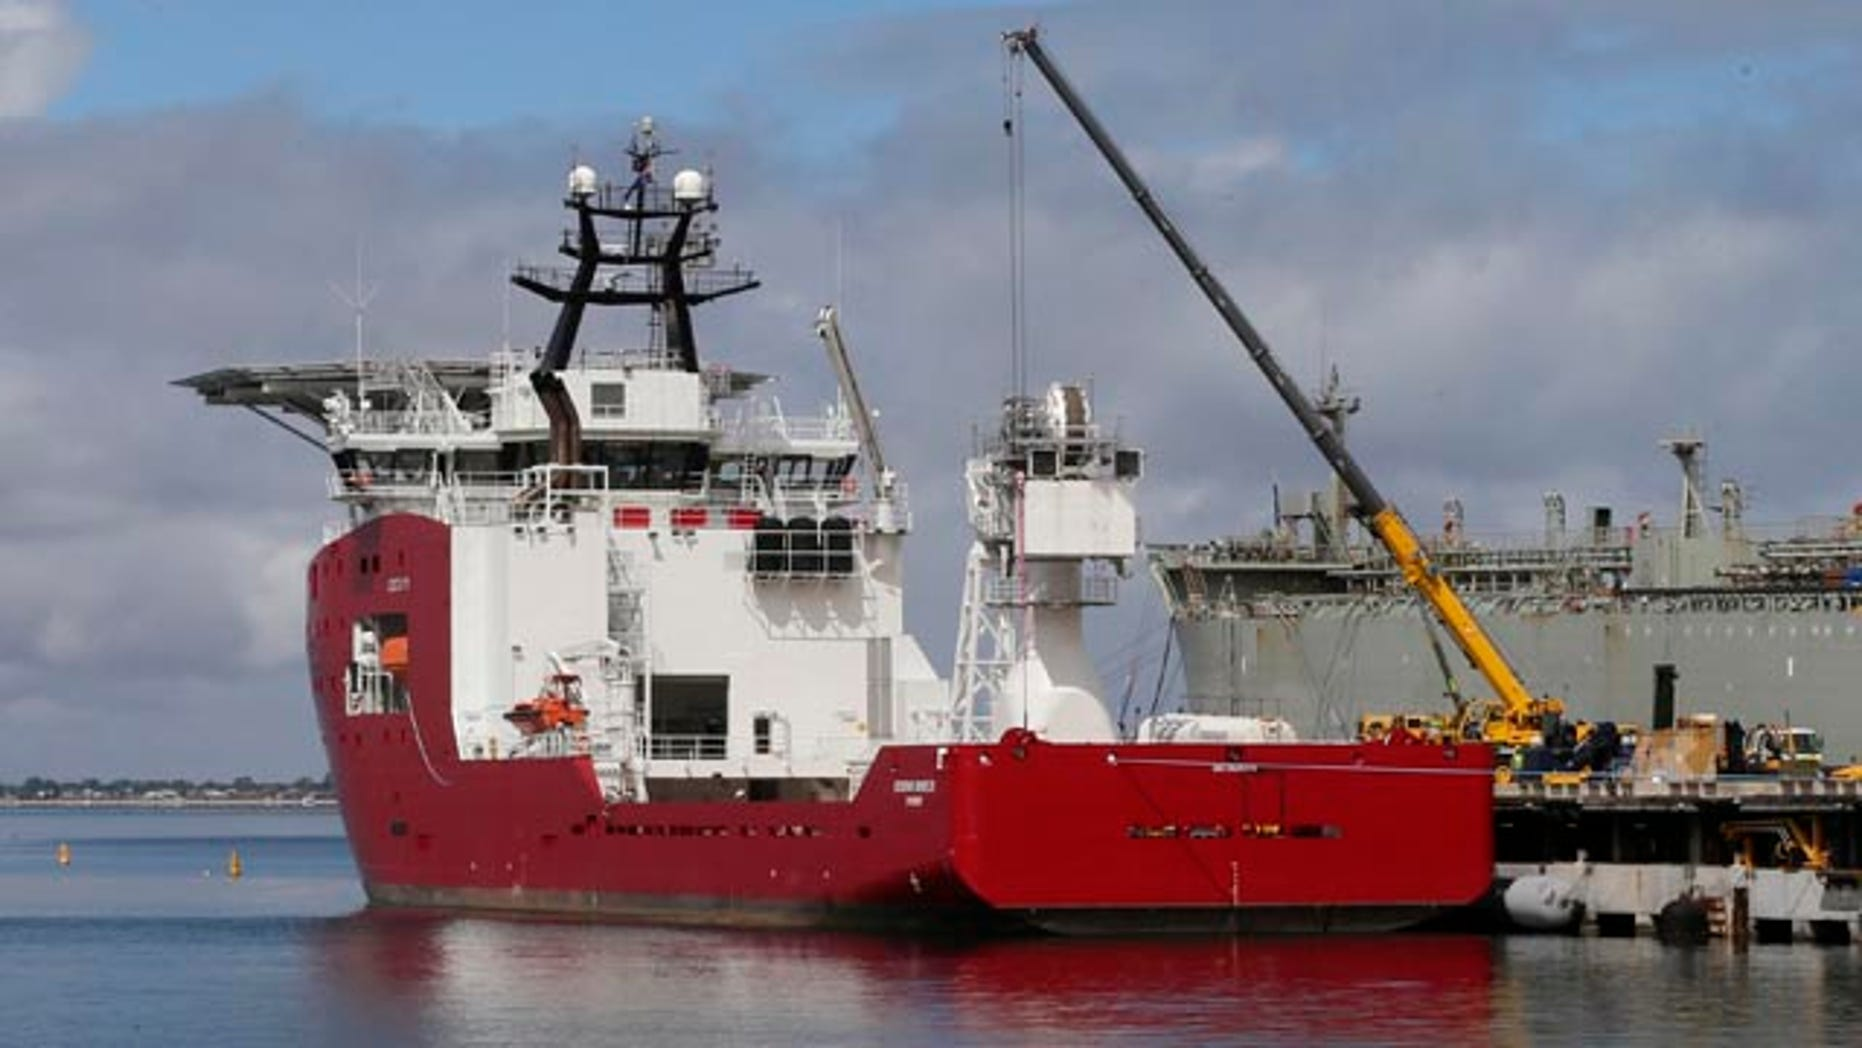 FILE - In this March 30, 2014 file photo, Australian navy ship Ocean Shield lies docked at naval base HMAS Stirling while being fitted with a towed pinger locator to aid in her roll in the search for missing Malaysia Airlines Flight MH370 in Perth, Australia. (AP Photo/Rob Griffith, File)